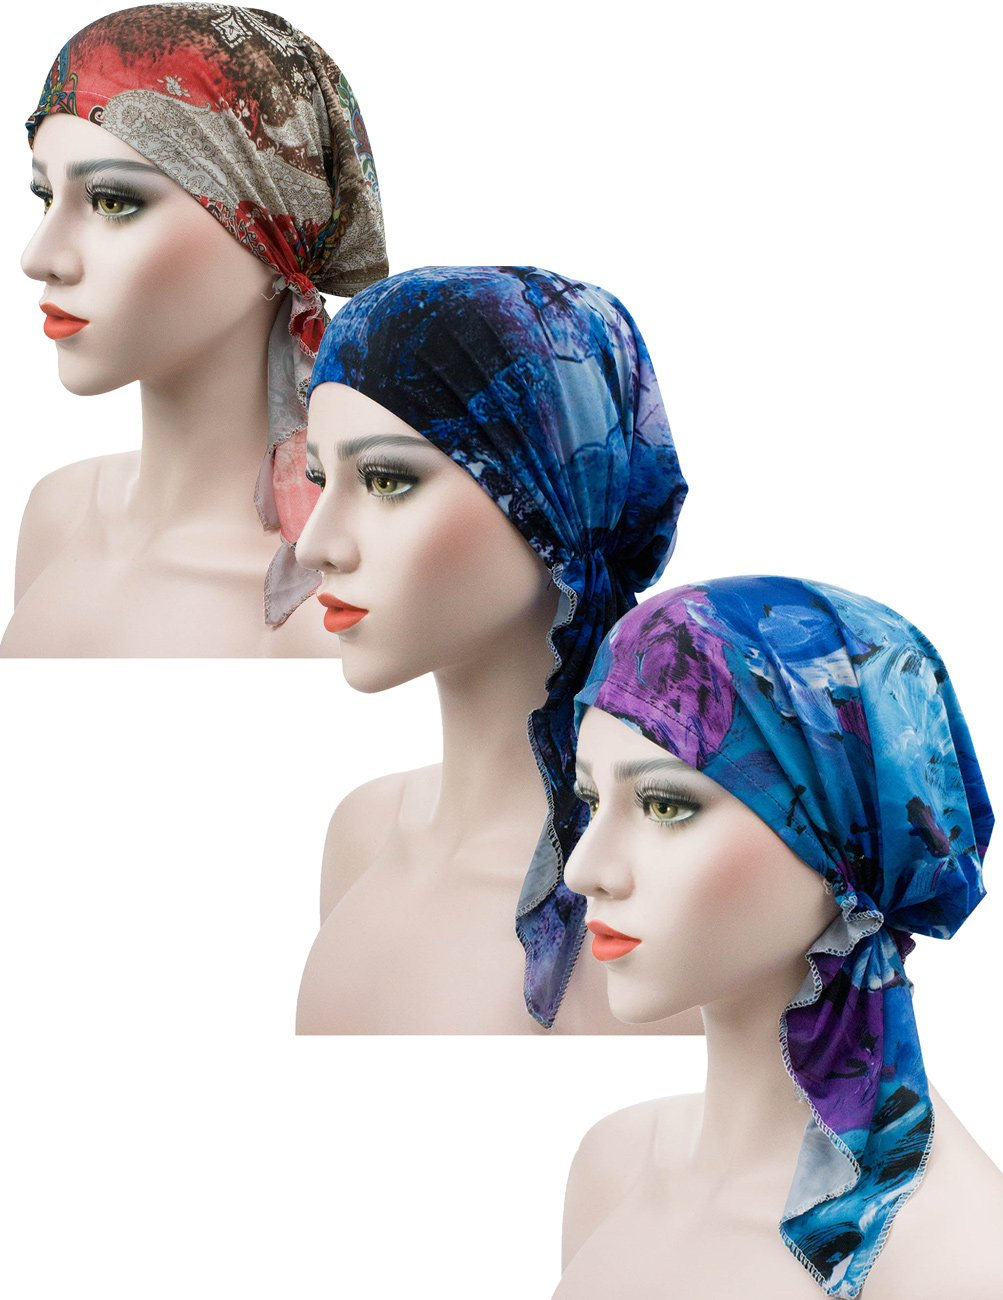 Luccy K Cancer Scarf Adjustable Chemo Beanies, Chemo Head Cap, Head Scarf, Hat for Women Cancer Patients (3PACK-JH9956)